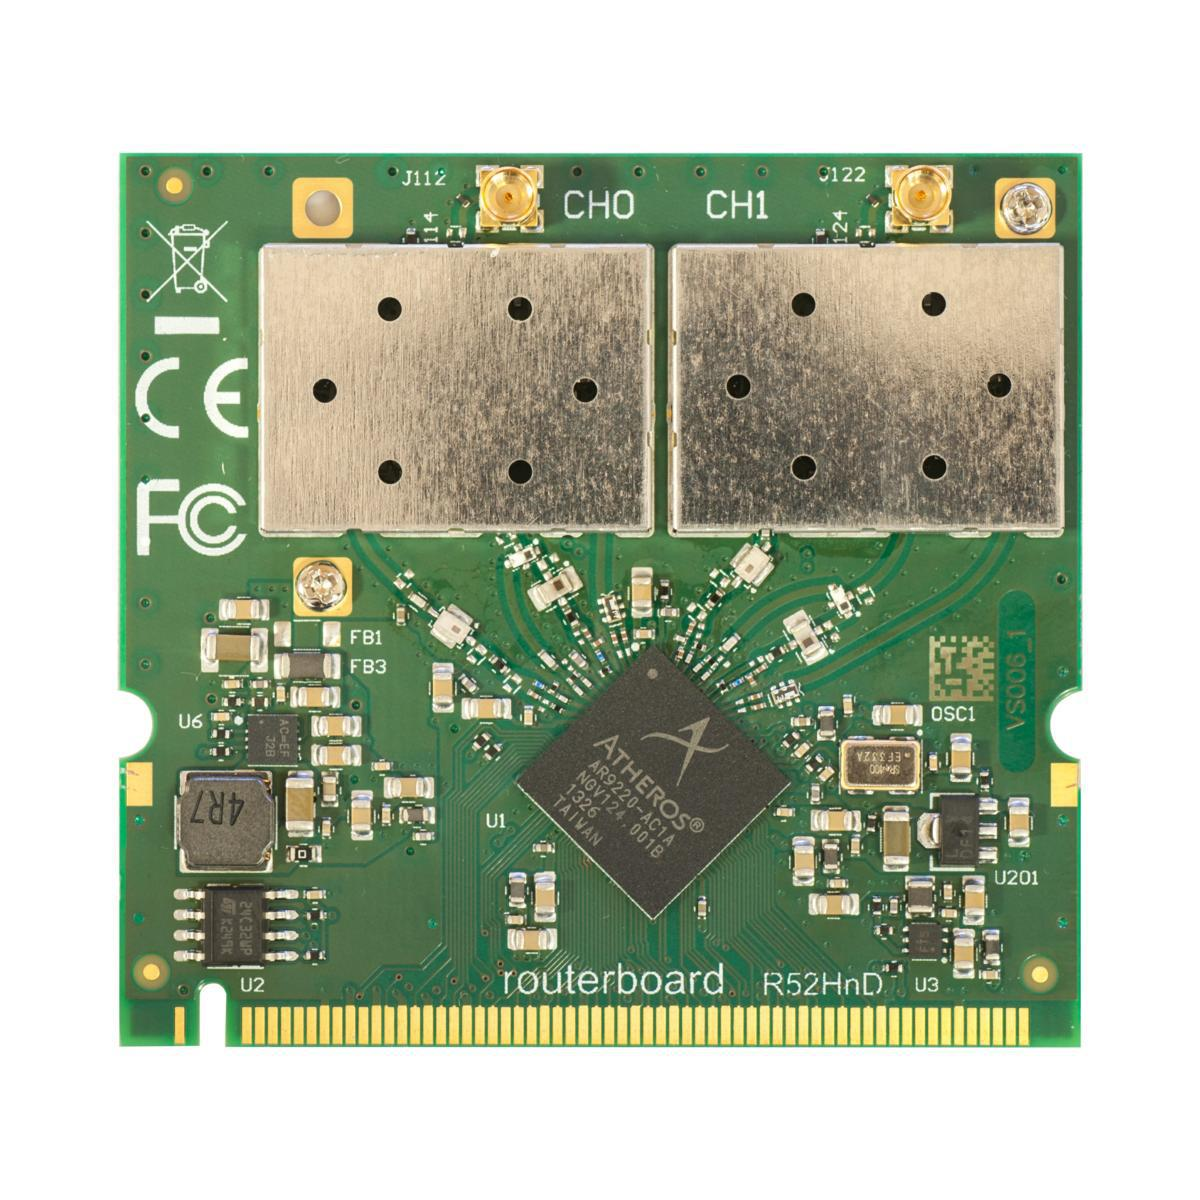 SICE Distributore Ufficiale  Interfaces MikroTik 802.11a/b/g/n HP Dual Band MiniPCI card with MMCX connectors | R52HND